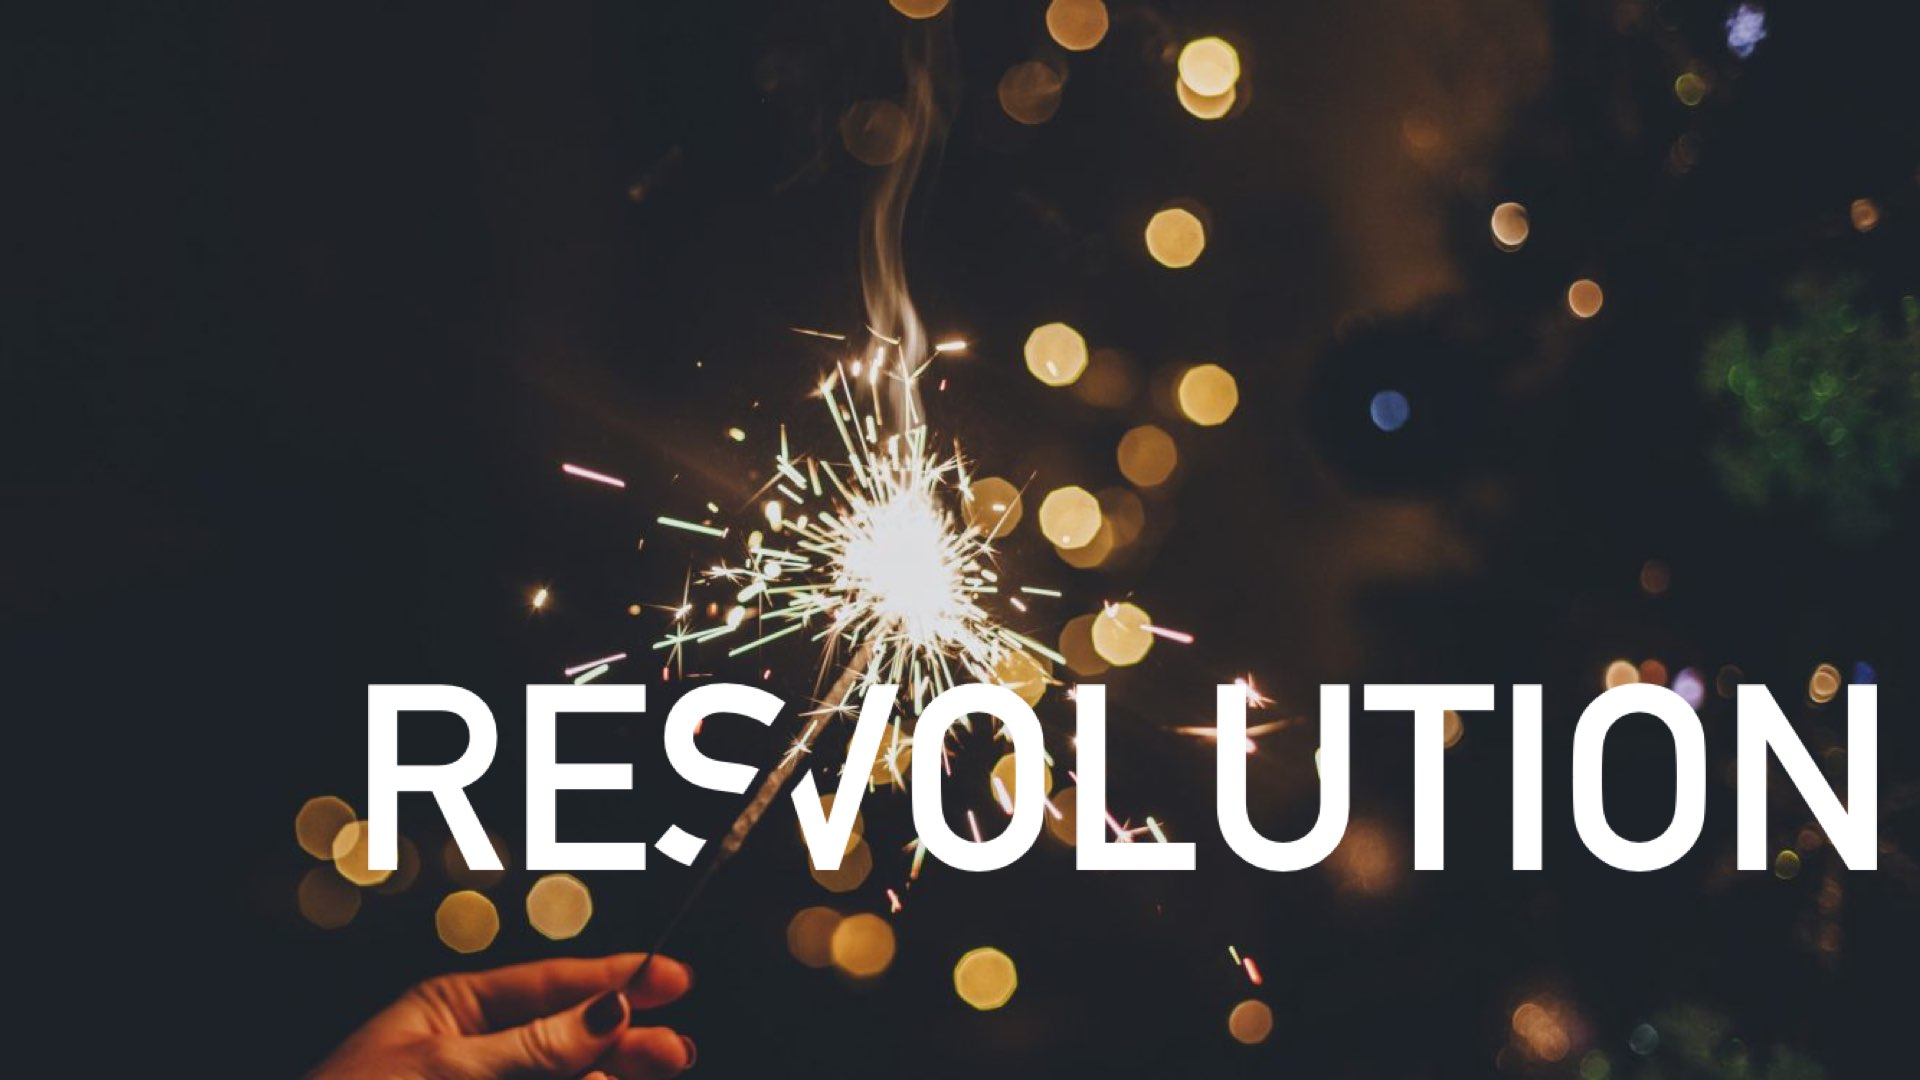 January Series: Res/volution